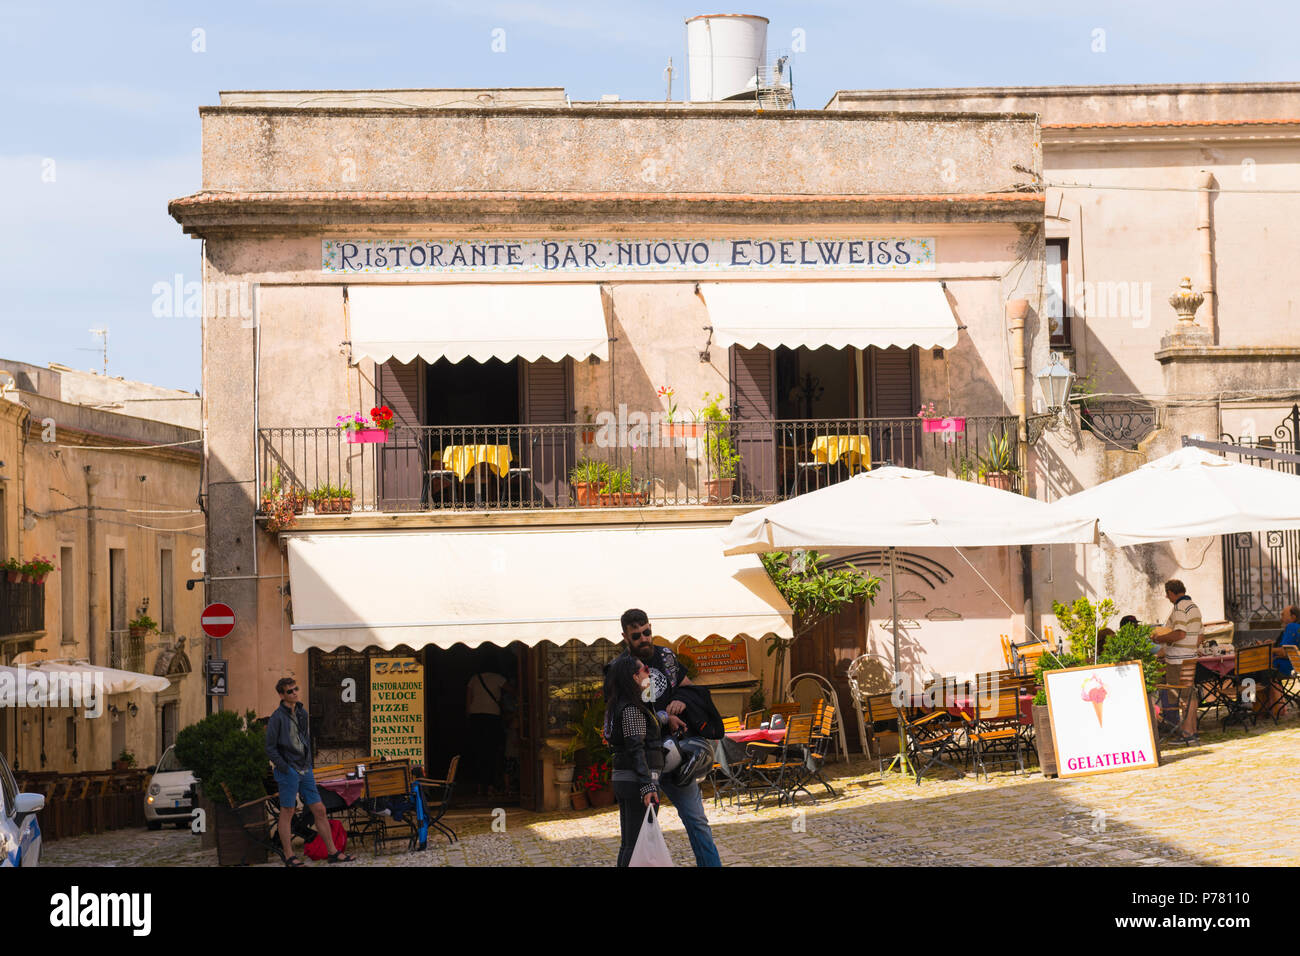 Italy Sicily medieval walled town Erice on Monte San Giuliana cult Venus Erycina Ristorante Bar Nuovo Edelweiss gelateria pizza arranging panini - Stock Image